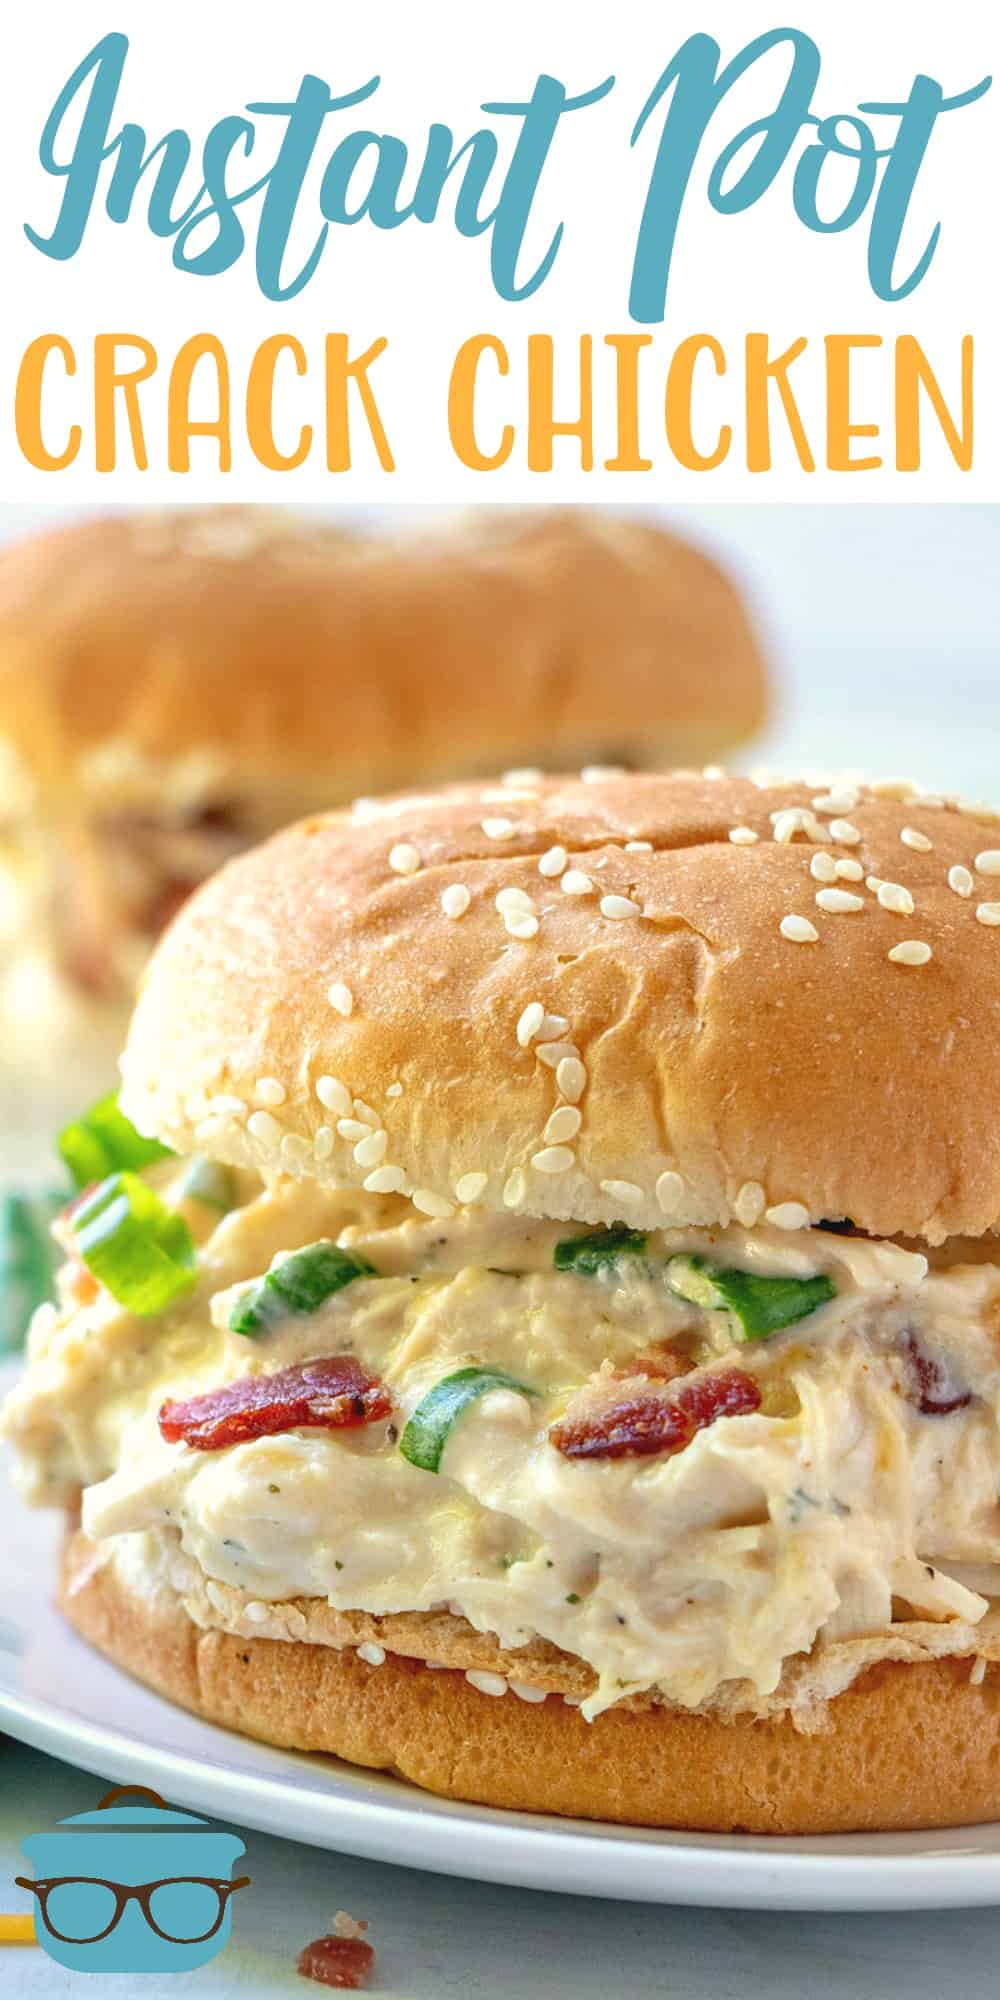 Instant Pot Crack Chicken is deliciously creamy, cheesy and seasoned with ranch, bacon and green onion. Serve on a bun or as a lettuce wrap. #instantpot #crackchicken